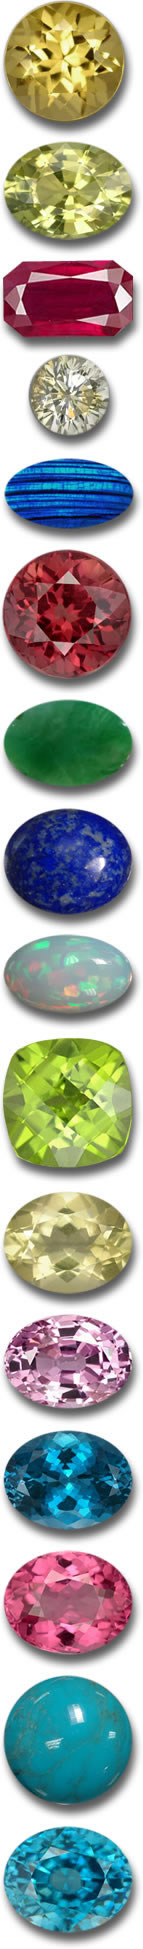 Gemstone Groups